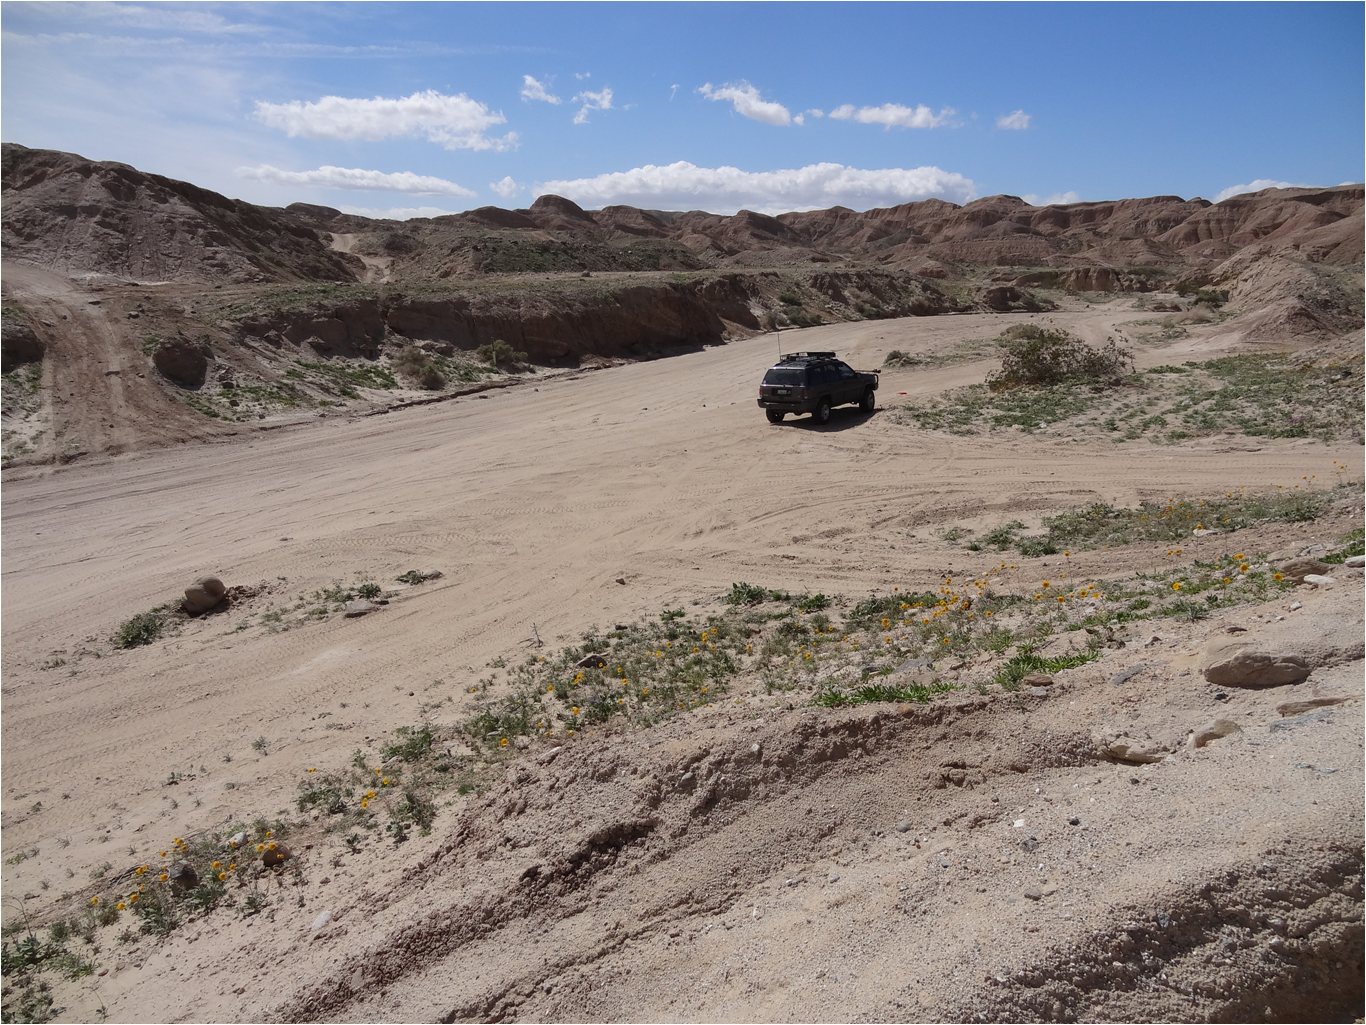 Tectonic Gorge - Ocotillo Wells SVRA - Waypoint 2: Access to Camp Area